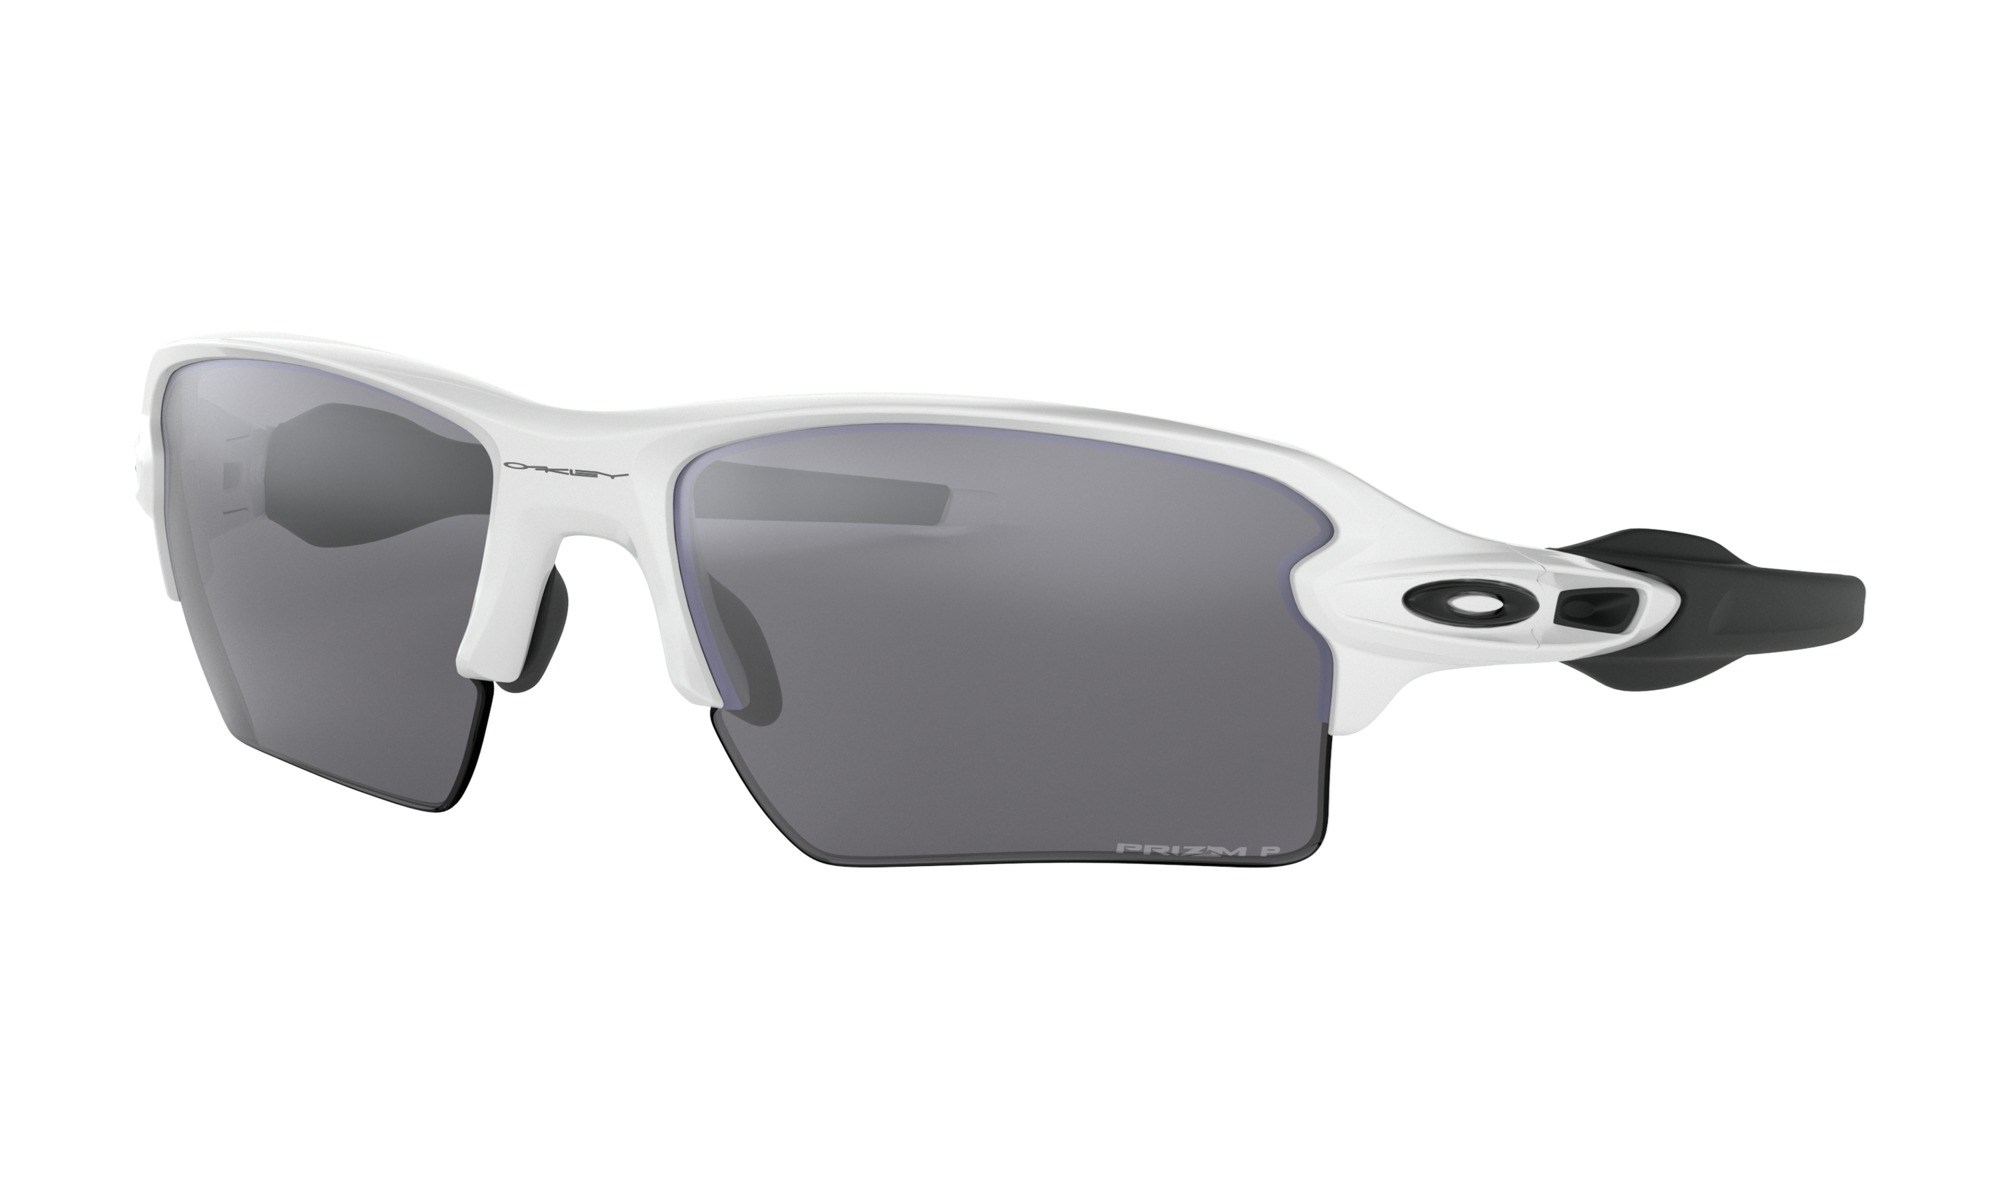 dd9118504a Oakley Flak 2.0 XL Sunglasses Polished White   Prizm Black Polarized. 0 (Be  the first to add a review!)